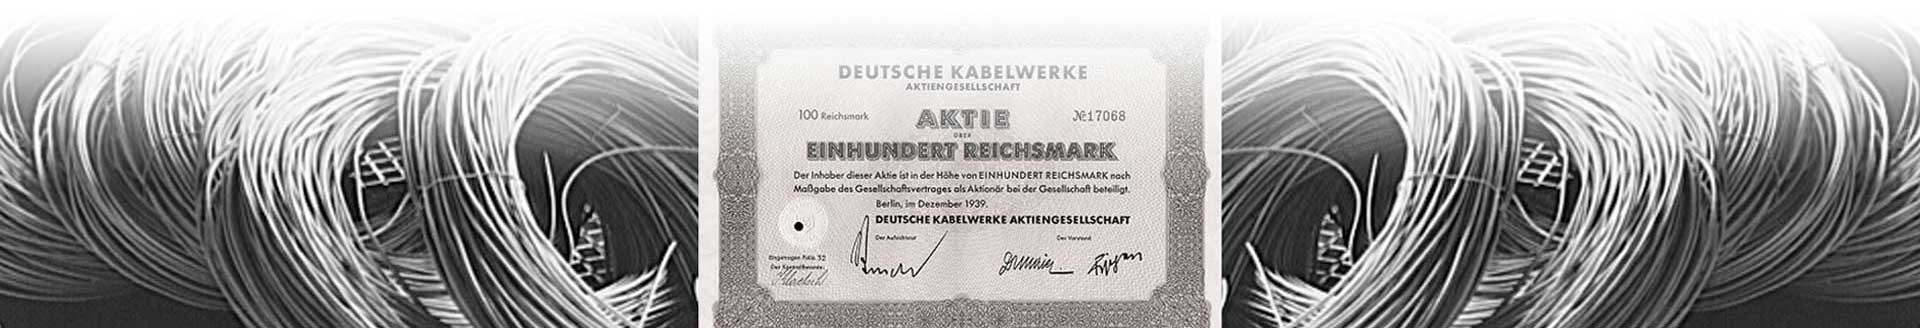 """""""German Finance Ministry Rejects Compensation for Heirs of the Deutsche Kabelwerke Shareholders"""" - Osen LLC Press Release"""